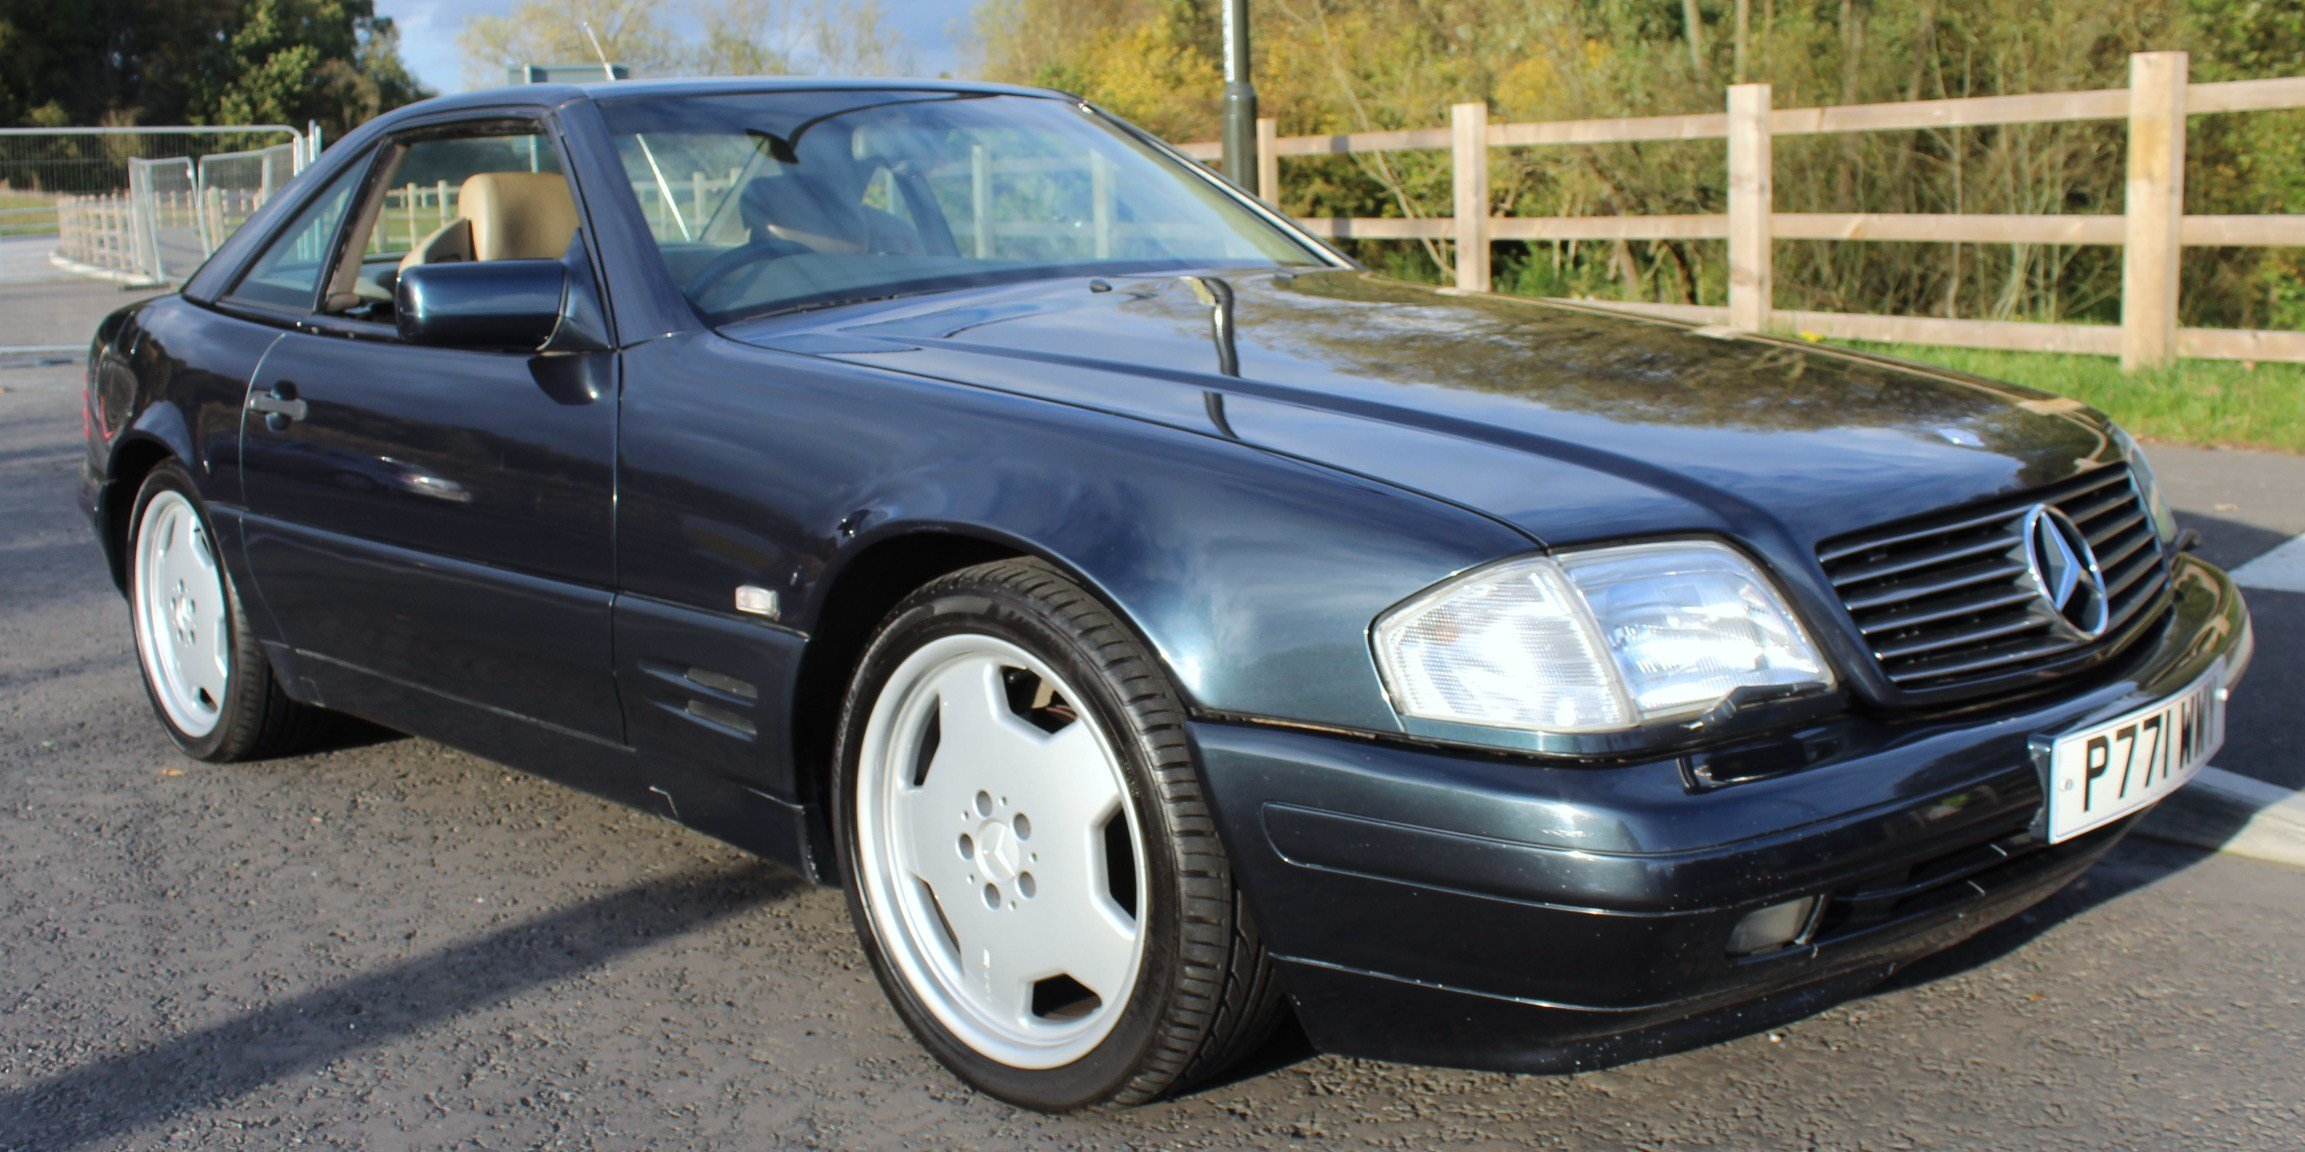 1997 Mercedes Benz R129 SL320 Sports Automatic For Sale (picture 1 of 6)